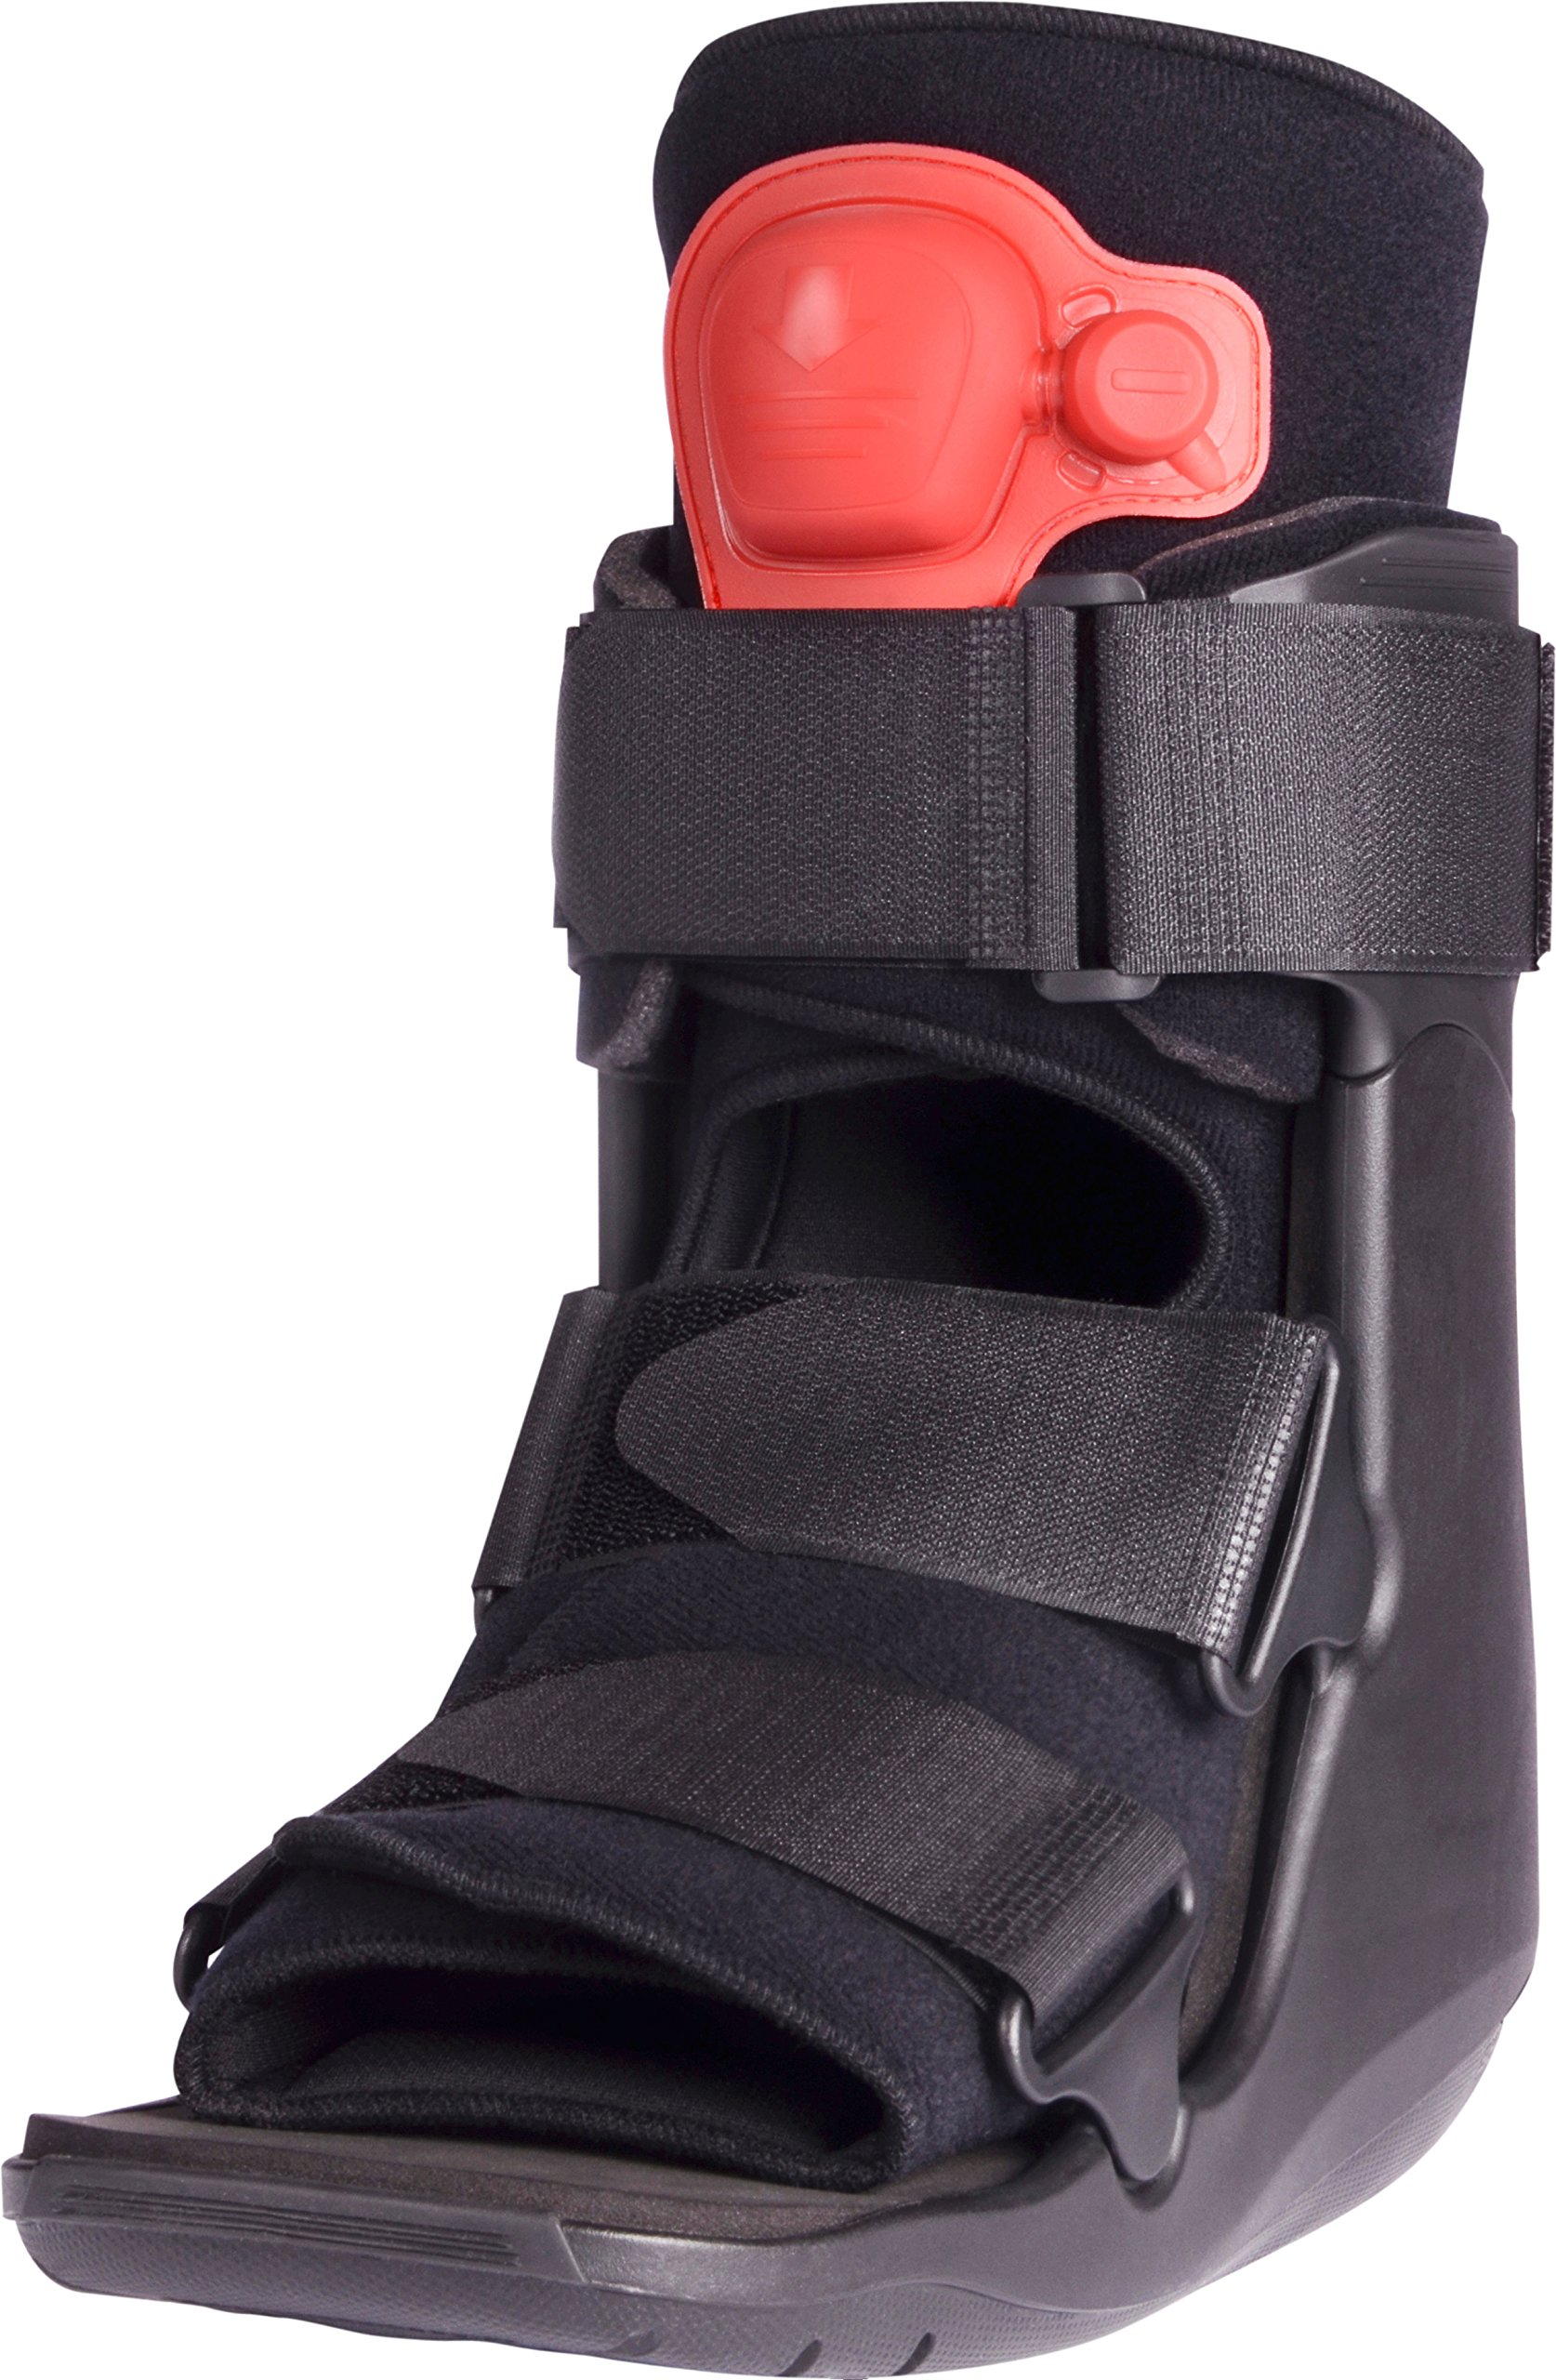 ProCare XcelTrax Air Ankle Walker Brace / Walking Boot, Medium by ProCare